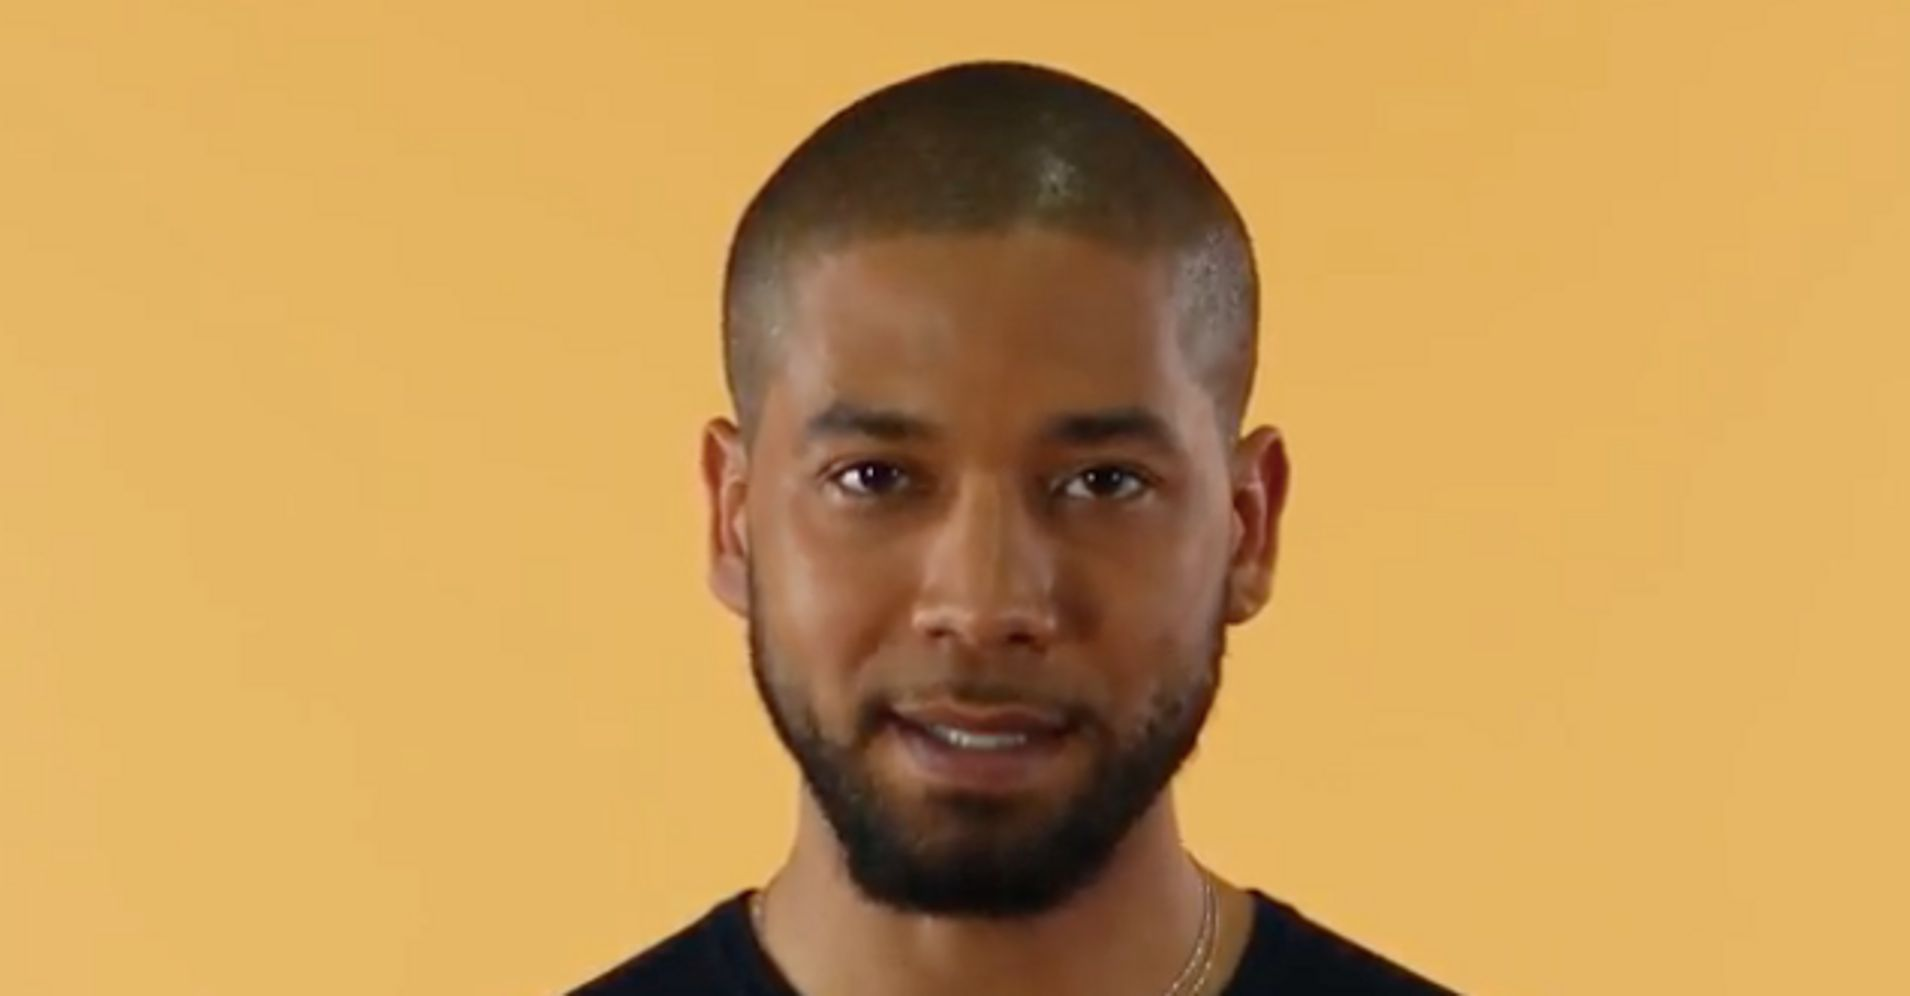 'Empire' Star Jussie Smollett Spearheads New LGBTQ Youth Campaign